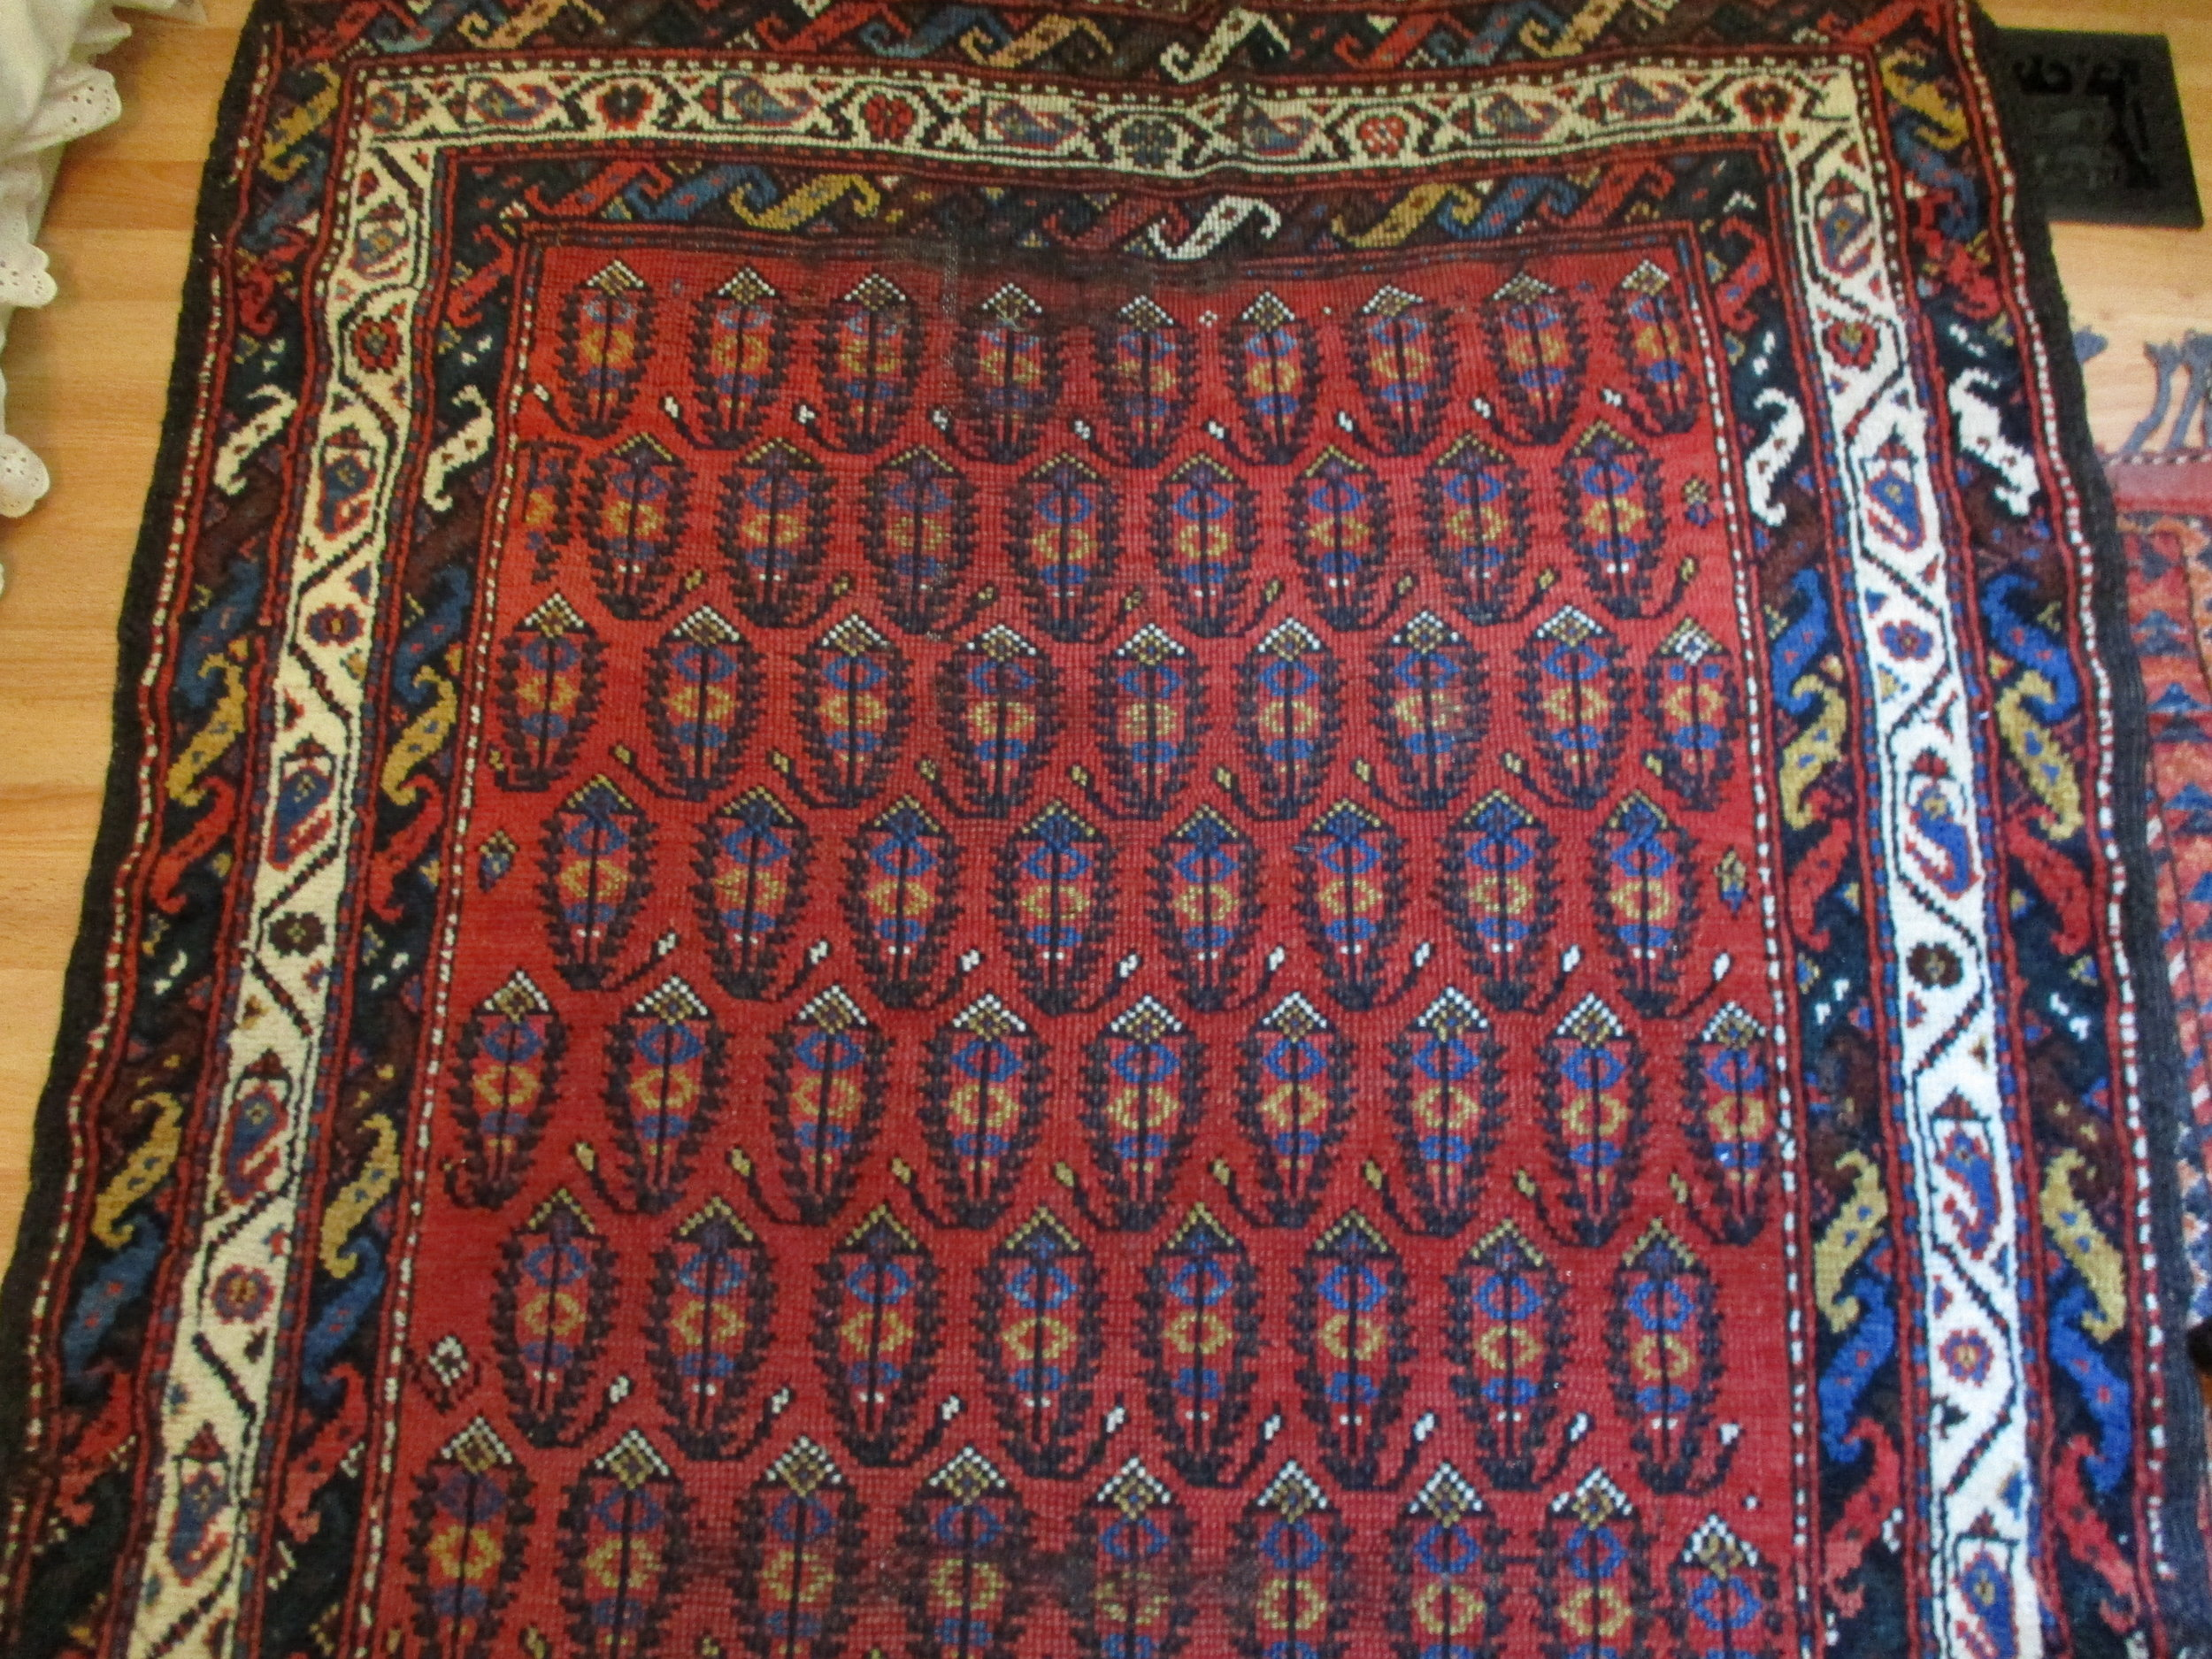 Antique Persian Luri runner. Overall boteh design with a gorgeous border. Some wear but still quite beautiful.